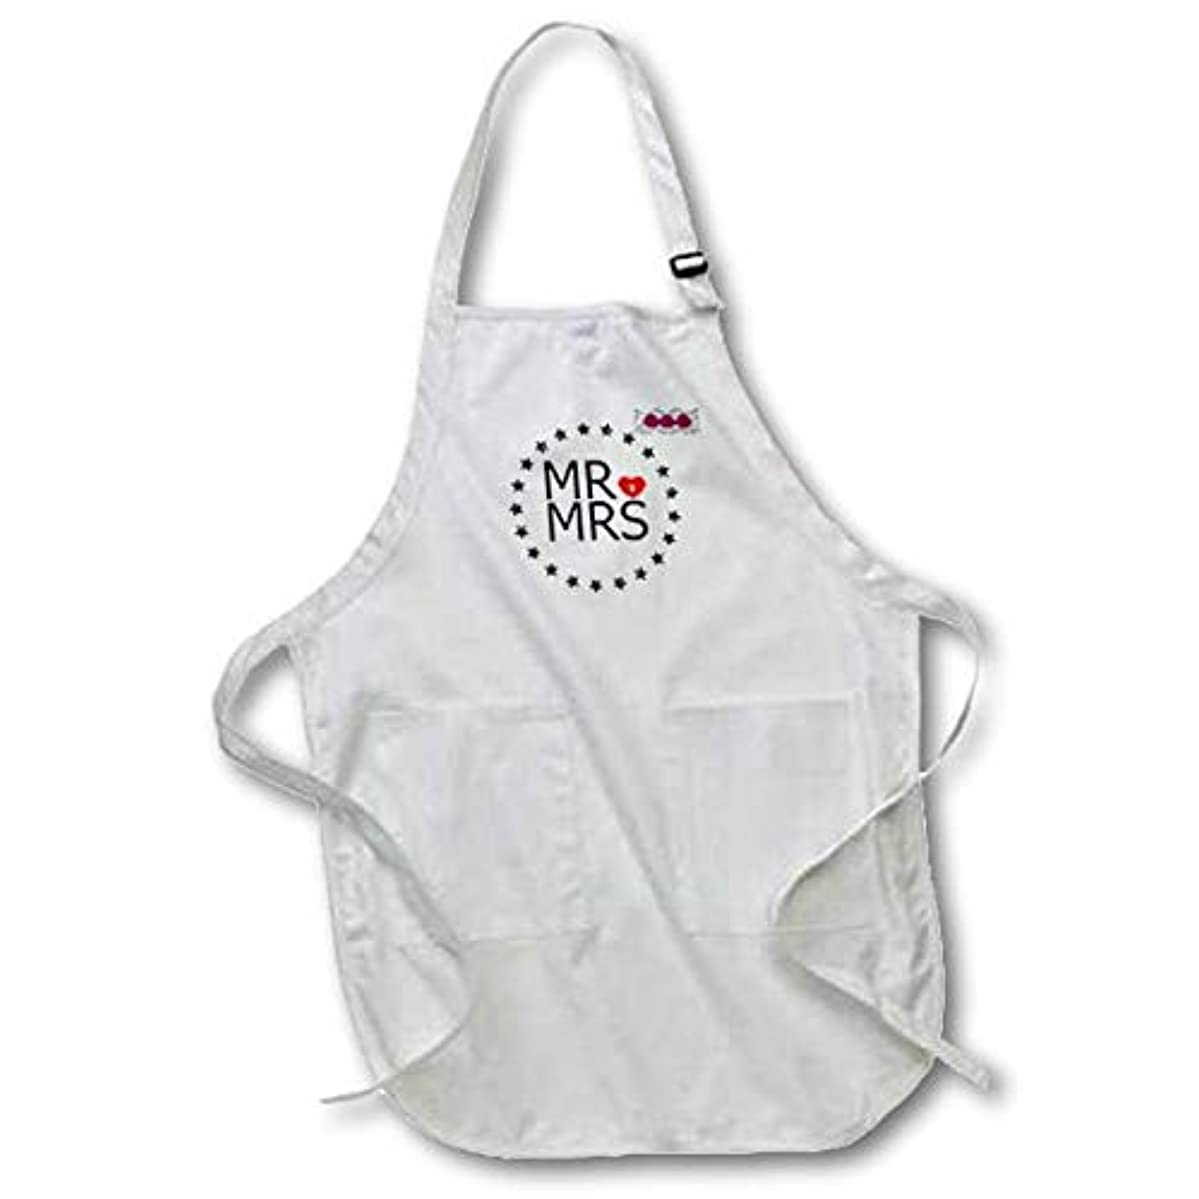 3dRose Engagement Announcements - Medium Length Apron, 22 by 24-Inch, with Pouch Pockets (apr_212699_2)